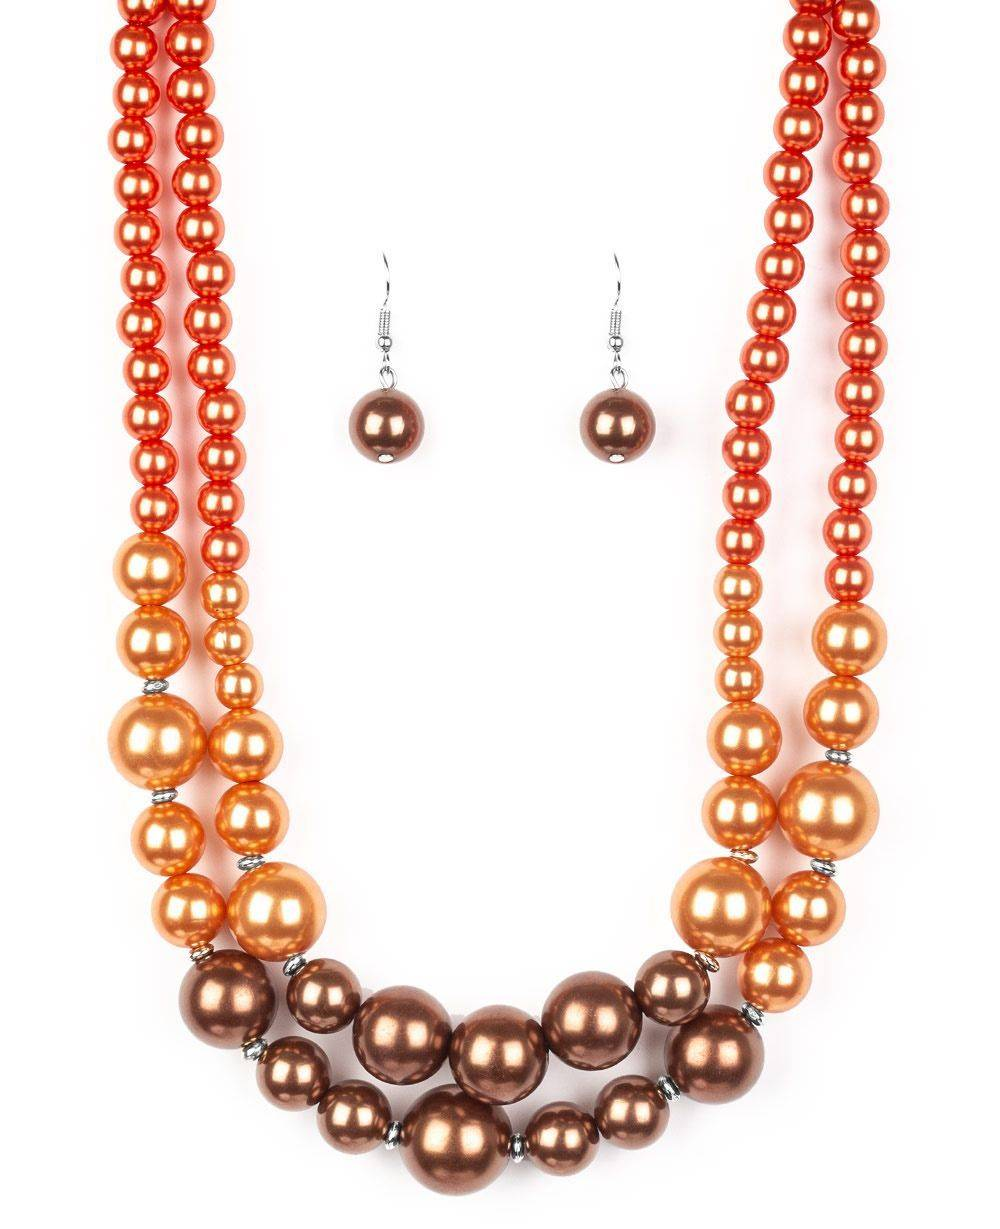 The more the modest multi necklace set